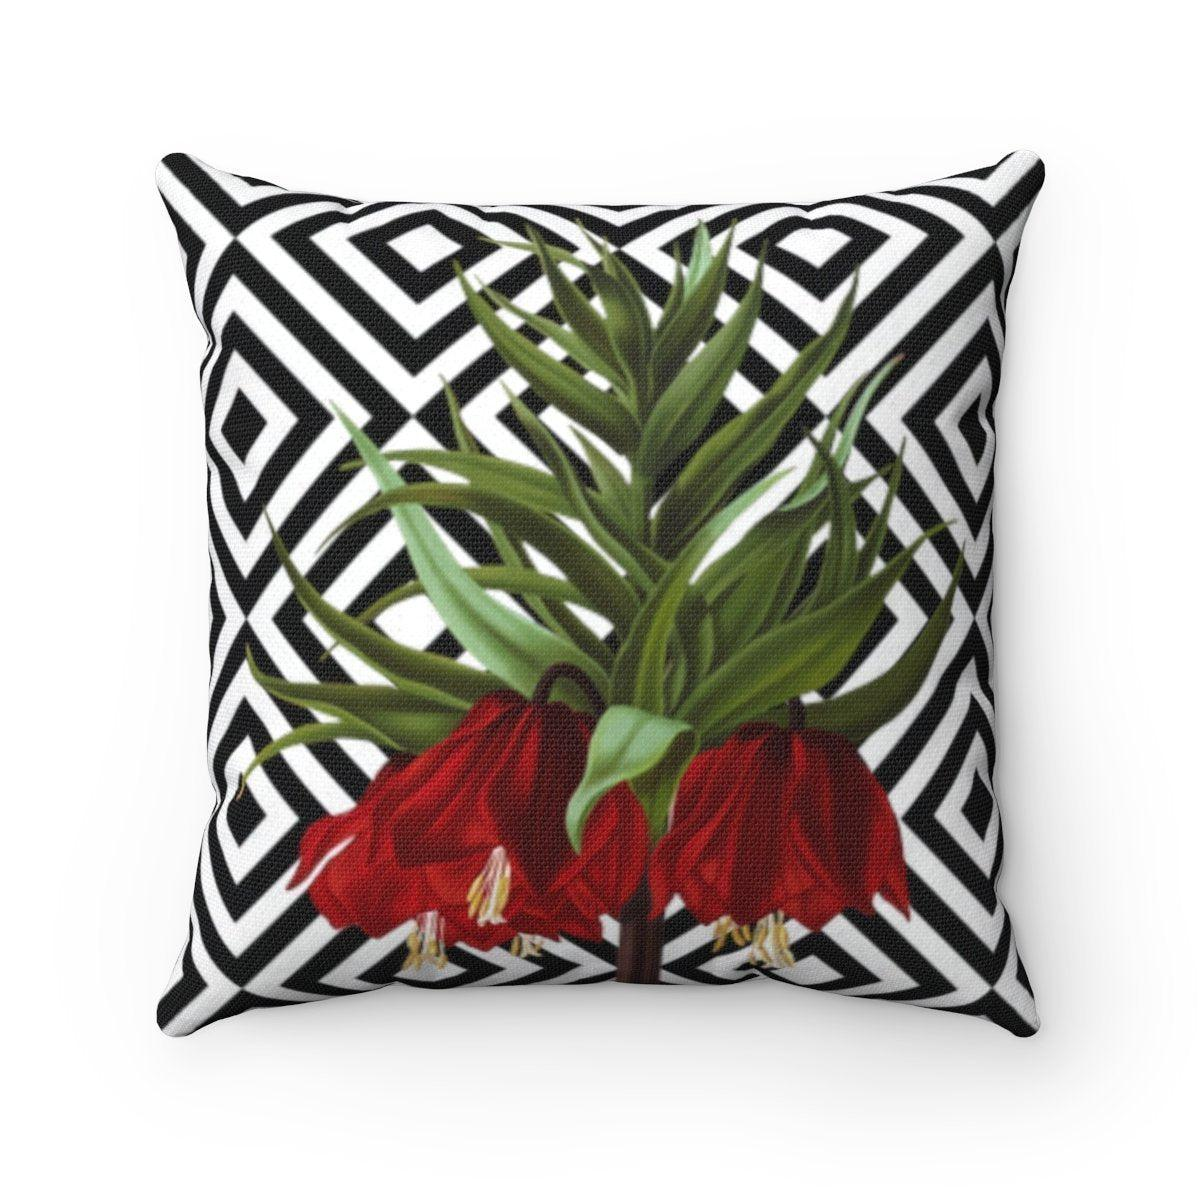 Luxury Floral abstract decorative cushion cover-Home Decor - Decorative Accents - Pillows & Throws - Decorative Pillows-Maison d'Elite-14x14-Très Elite